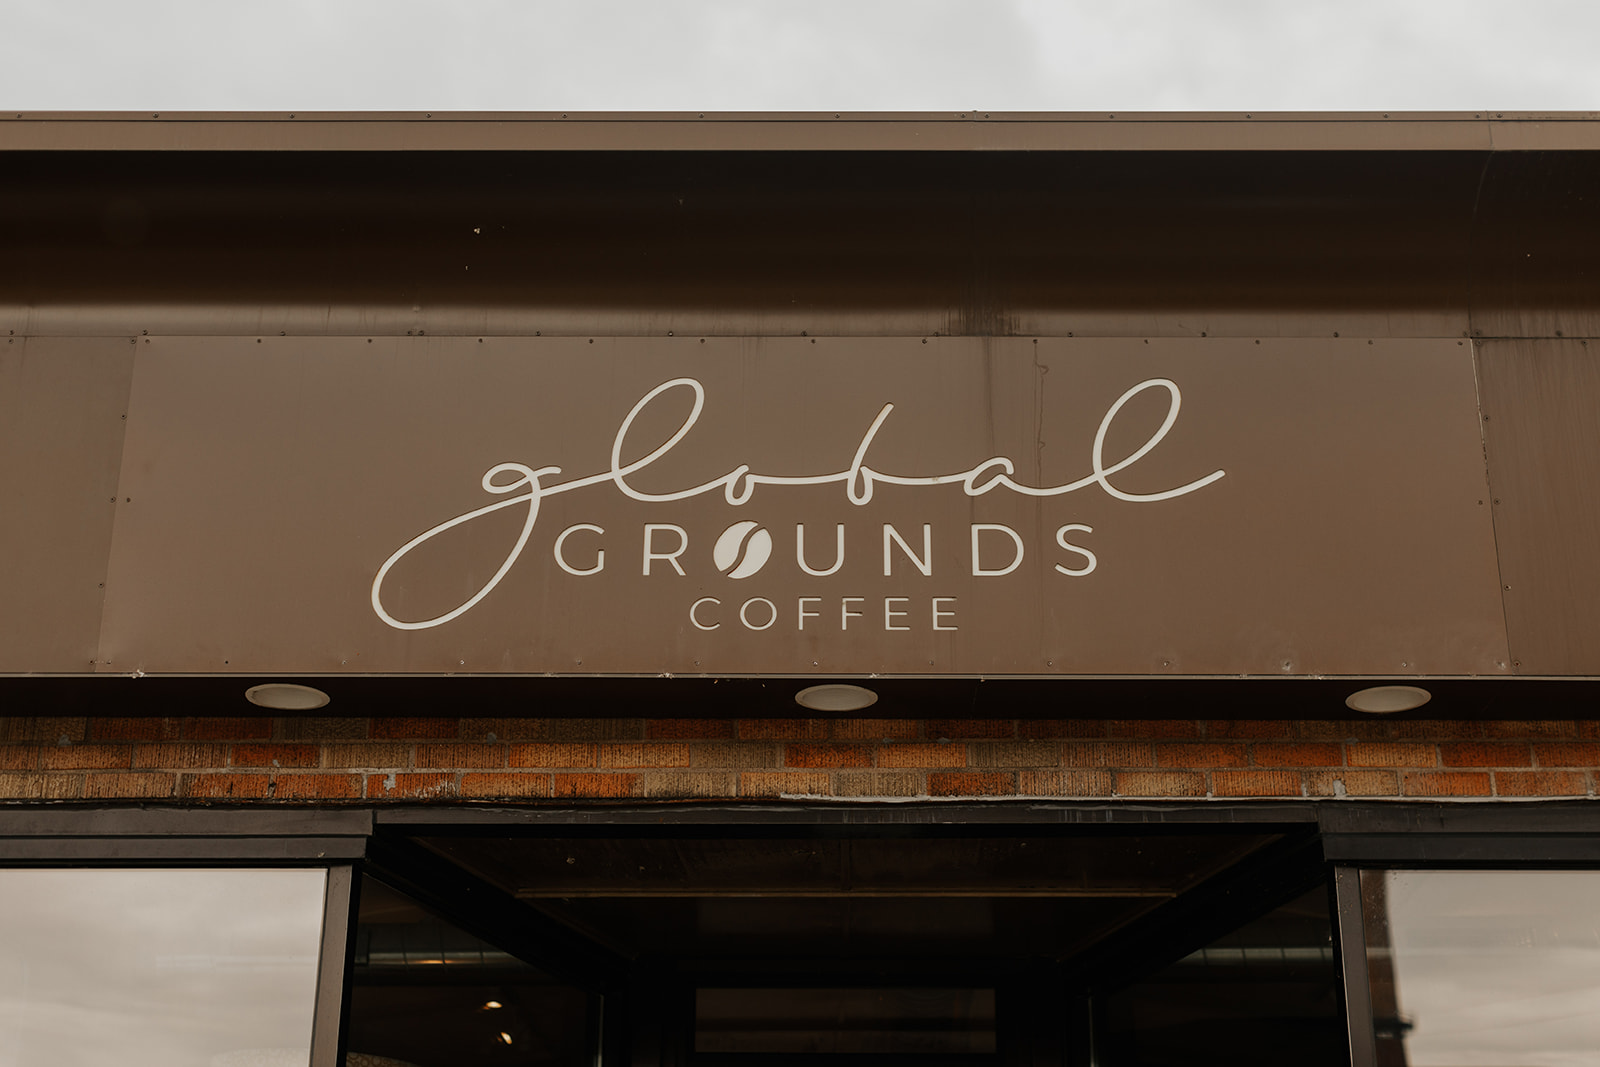 Global Grounds Coffee Shop Sign